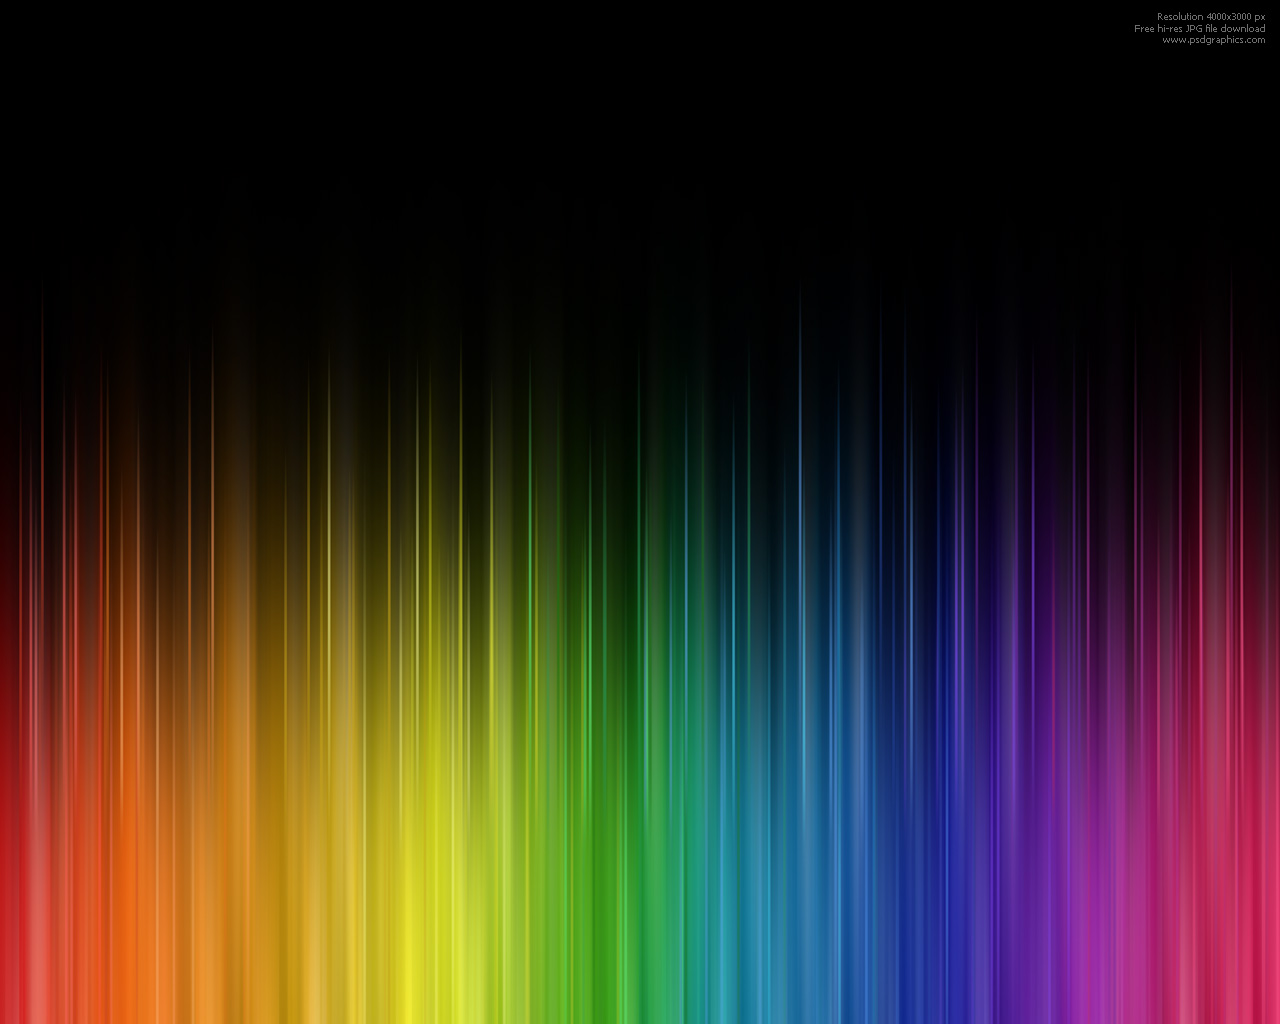 Colorful Abstract Bars Background Wallpapers | Colorful ...